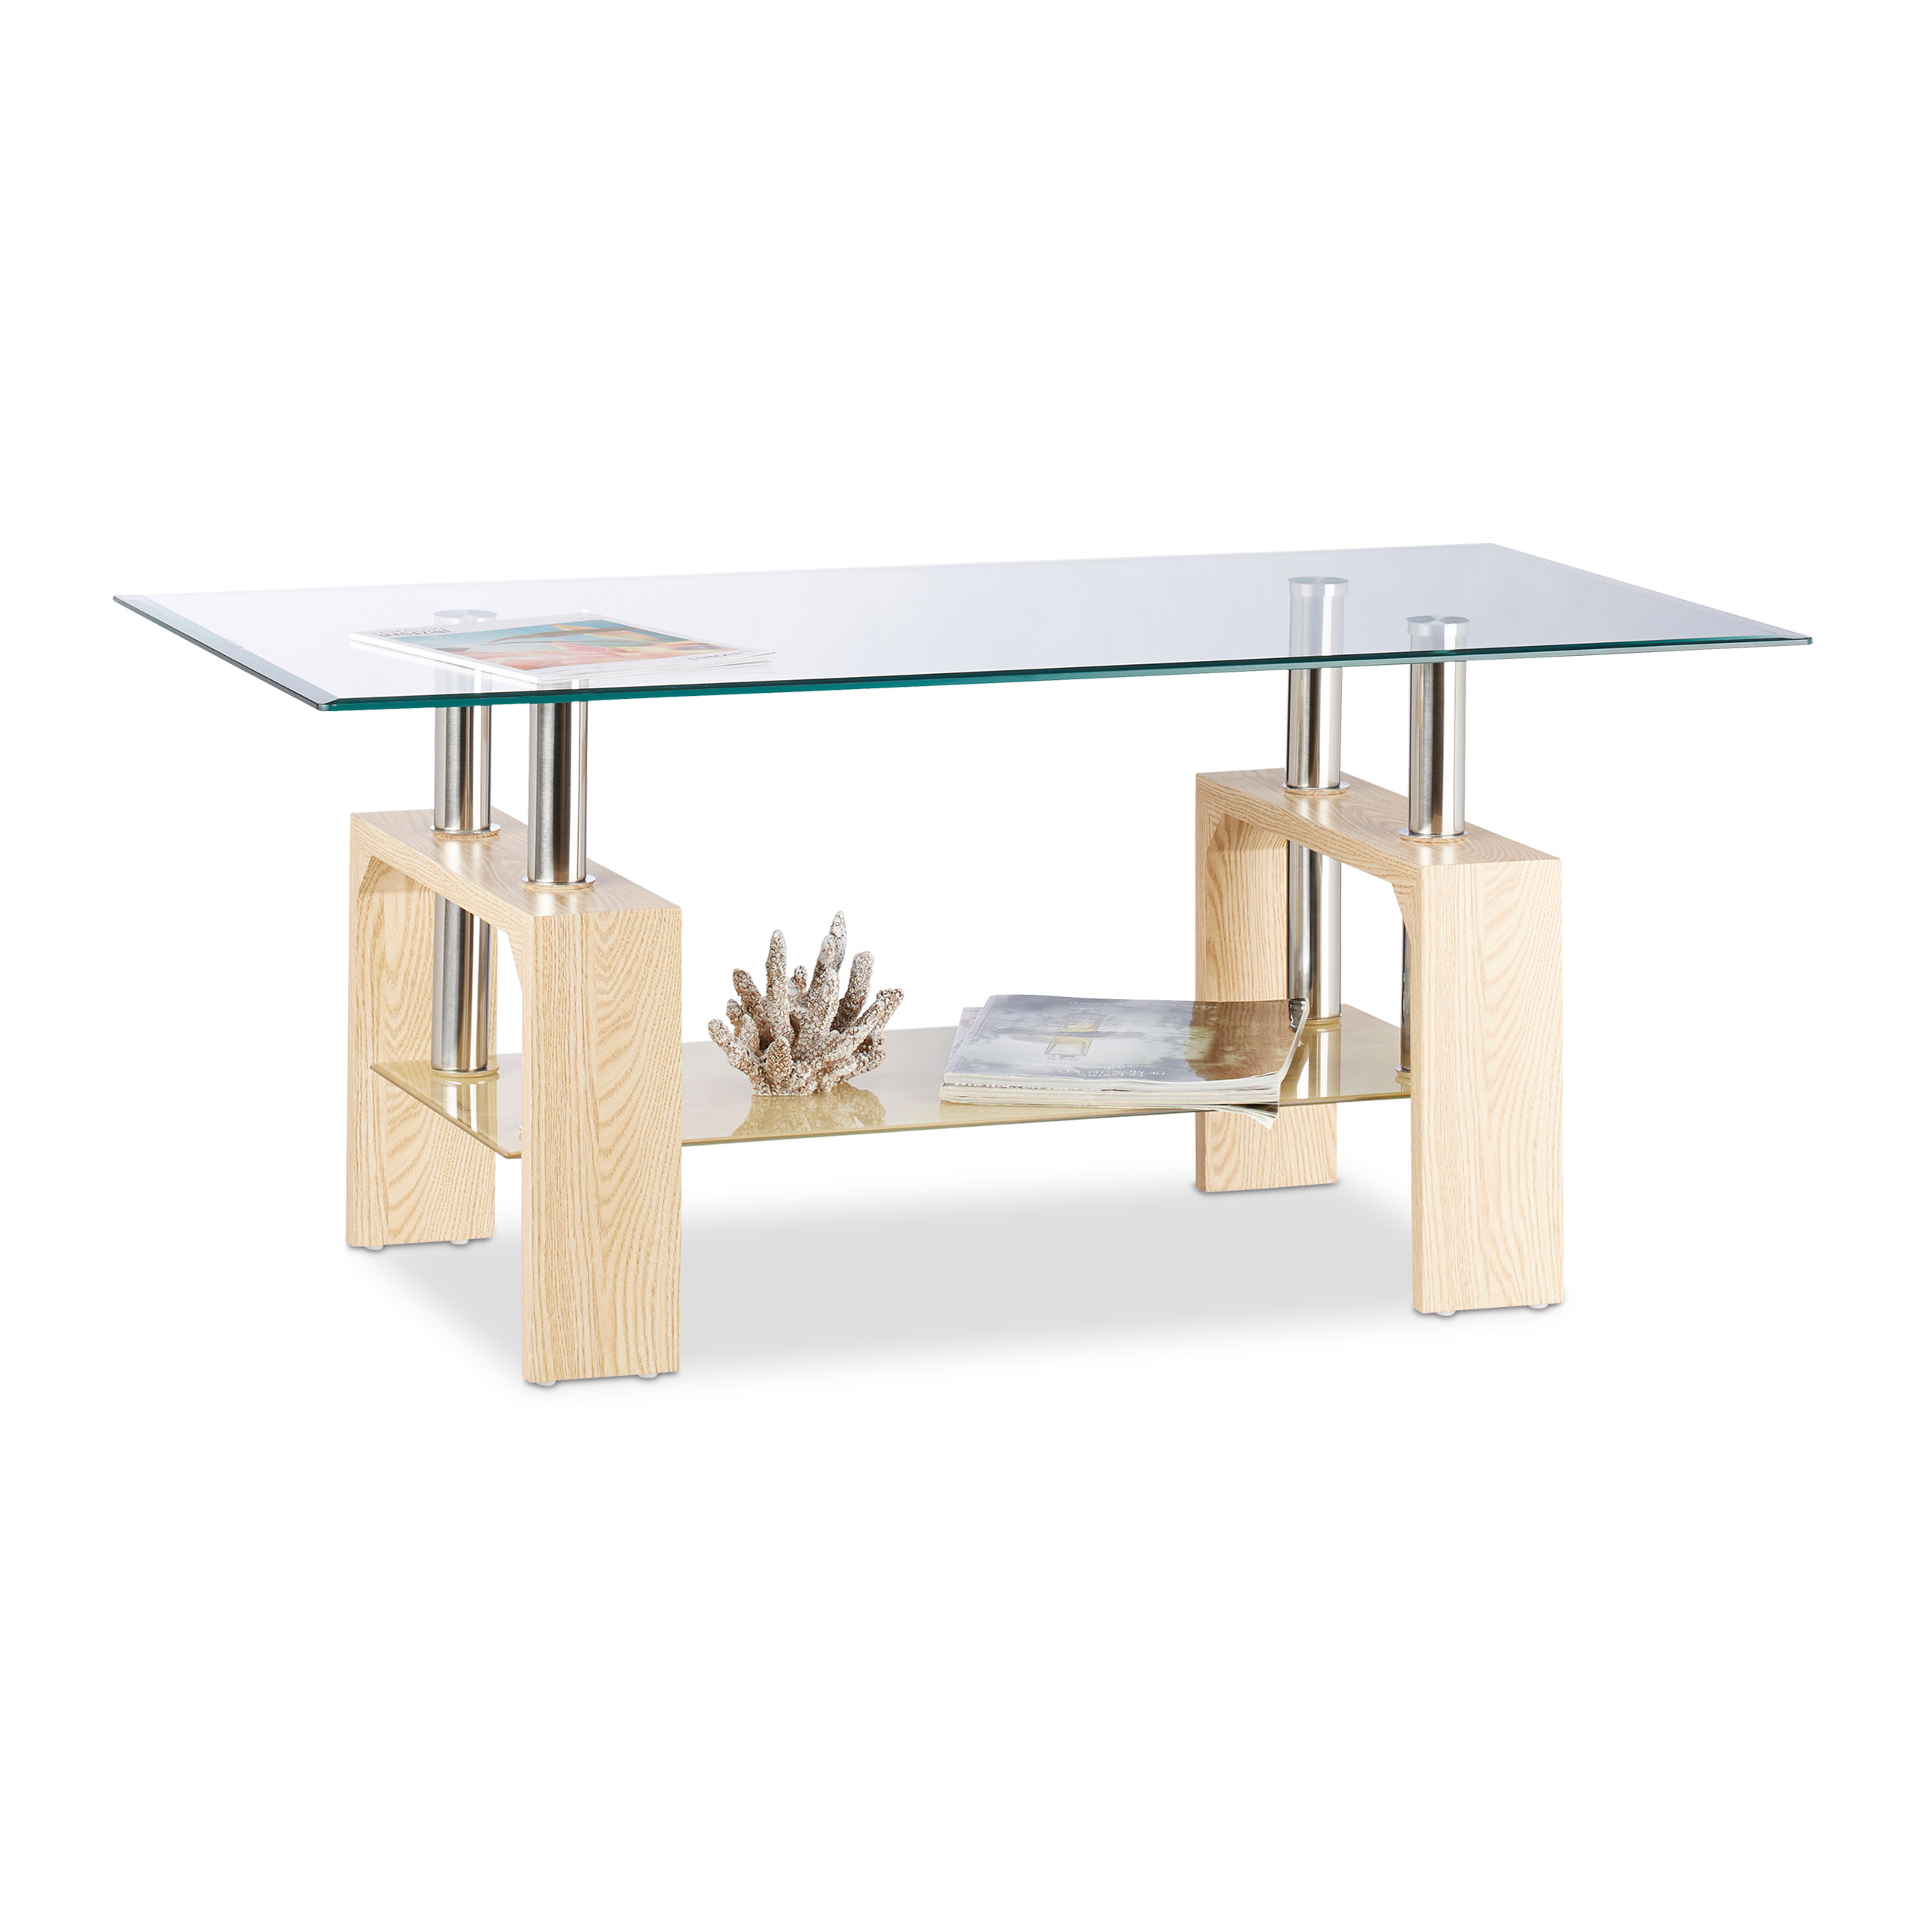 Table De Salon Verre Détails Sur Table Basse Verre Table De Salon Pieds Bois Mdf Table Verre Transparent Pause